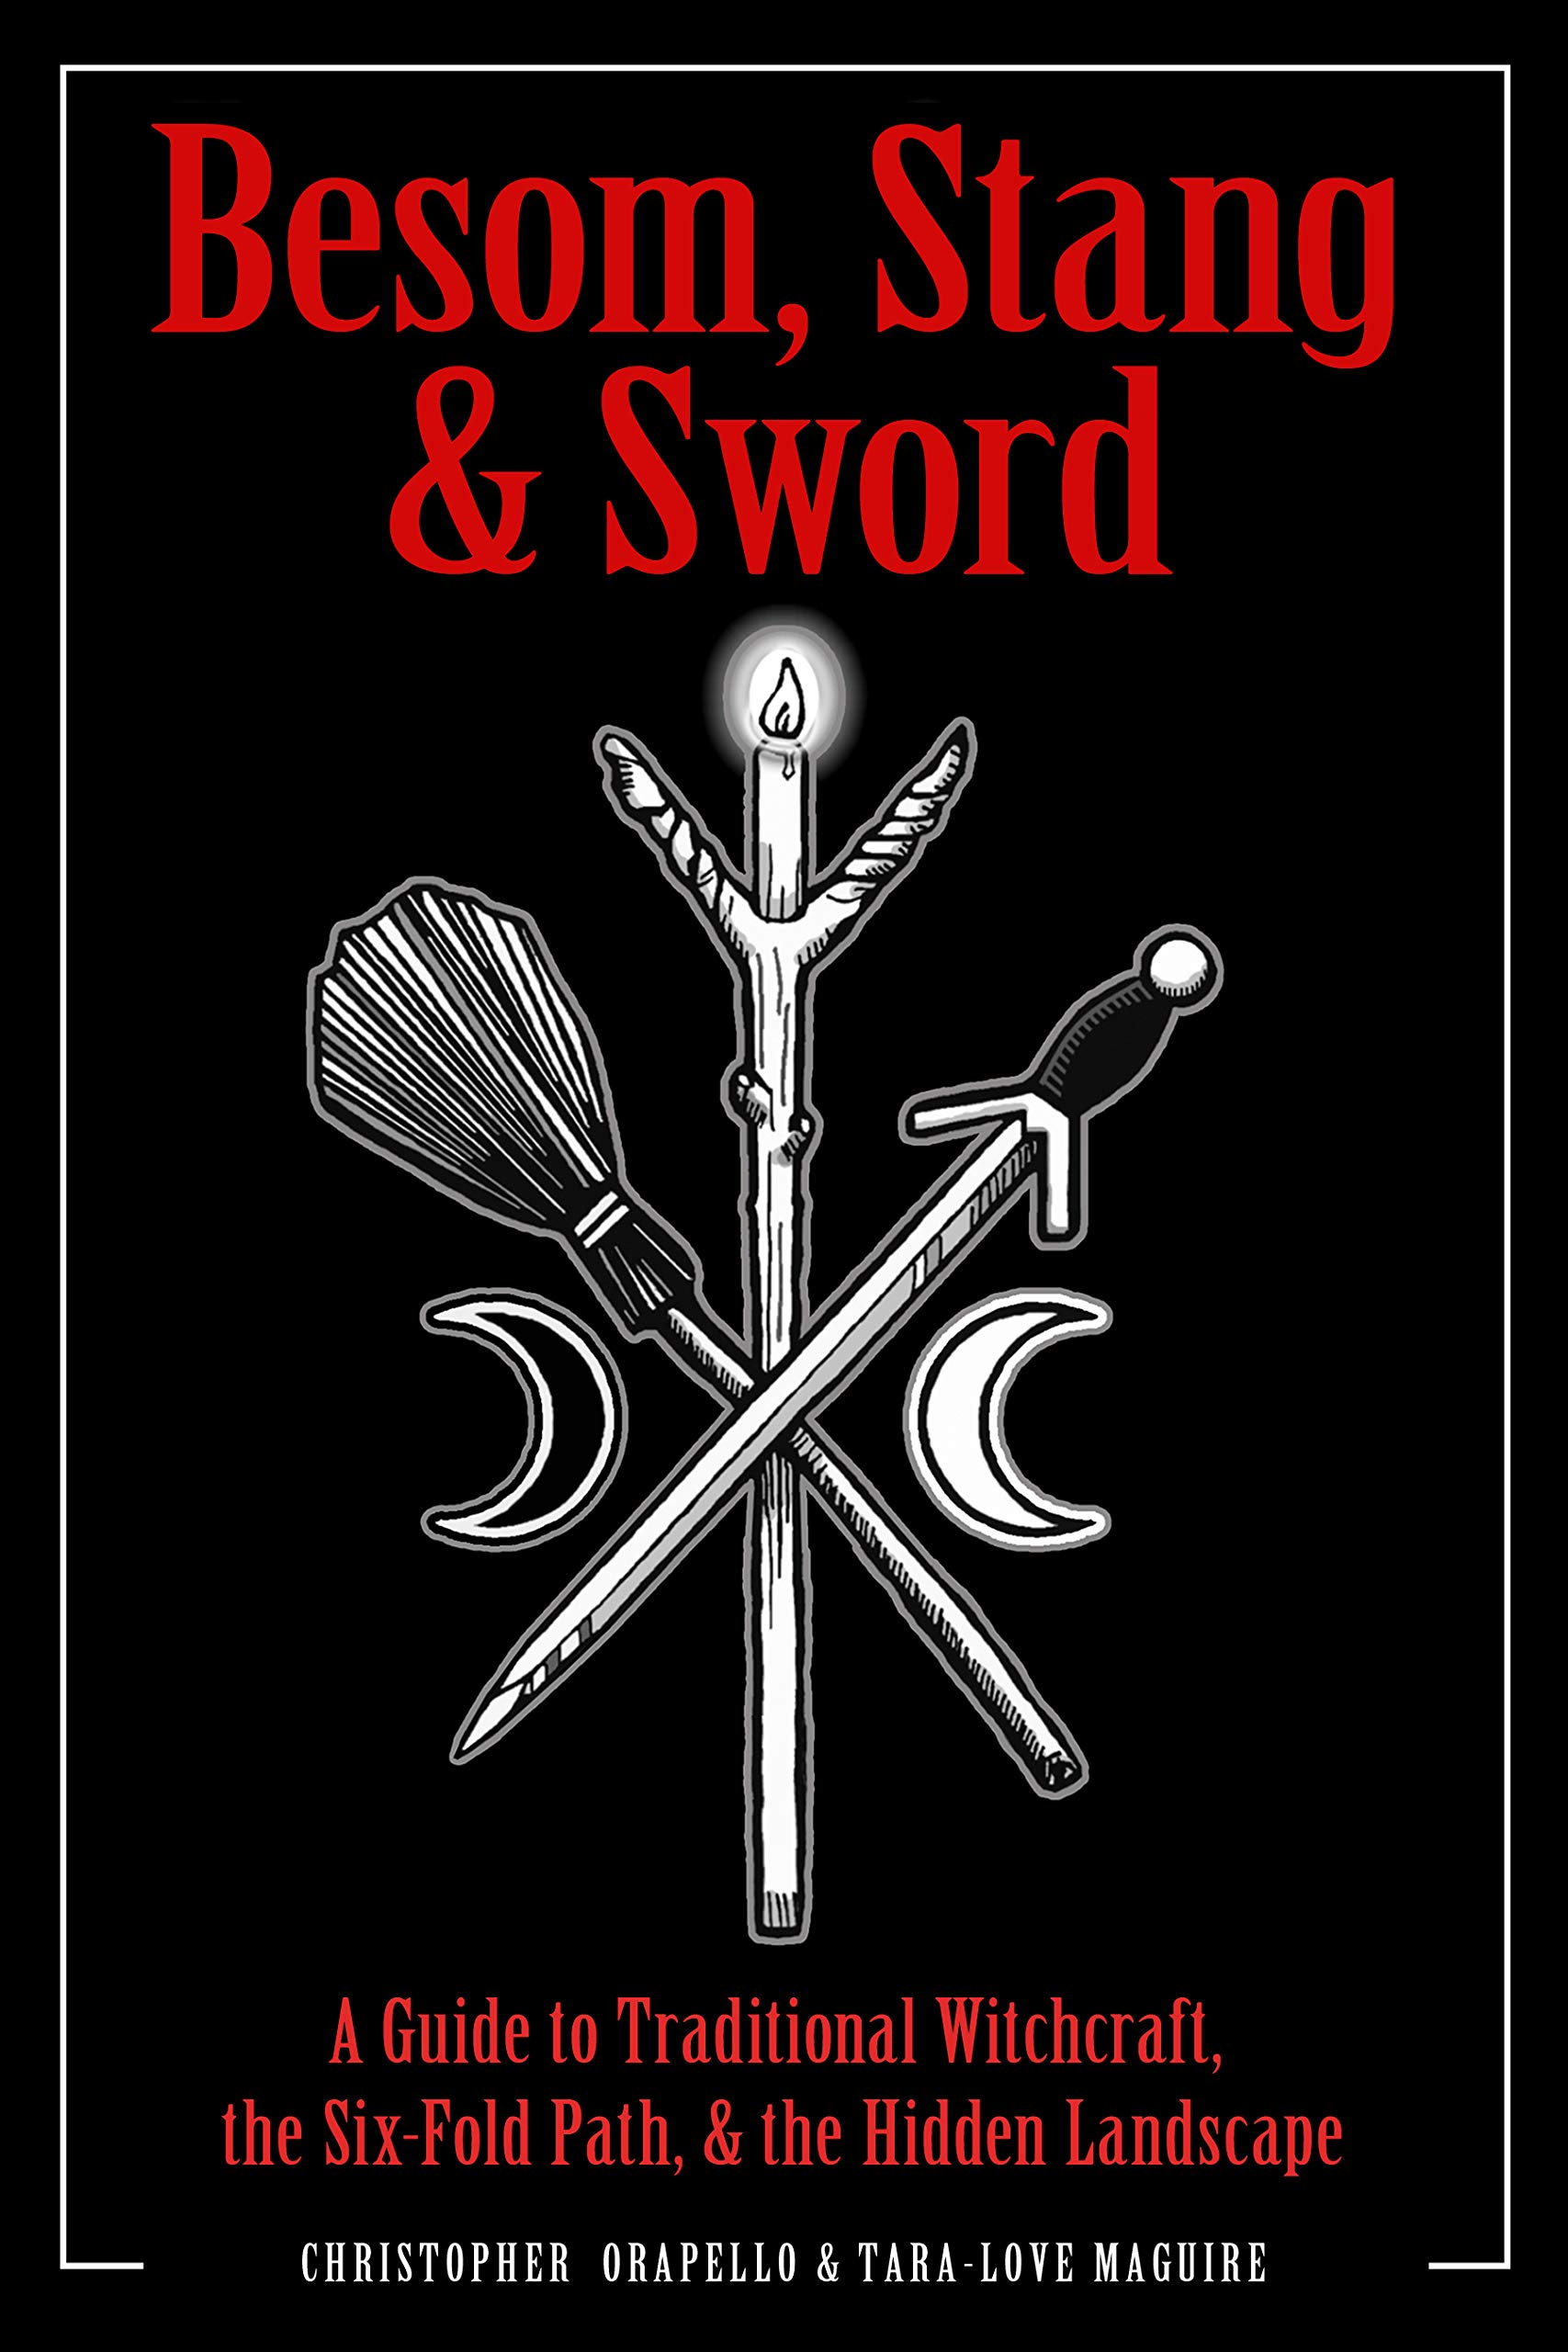 Besom, Stang & Sword: A Guide to Traditional Witchcraft, the